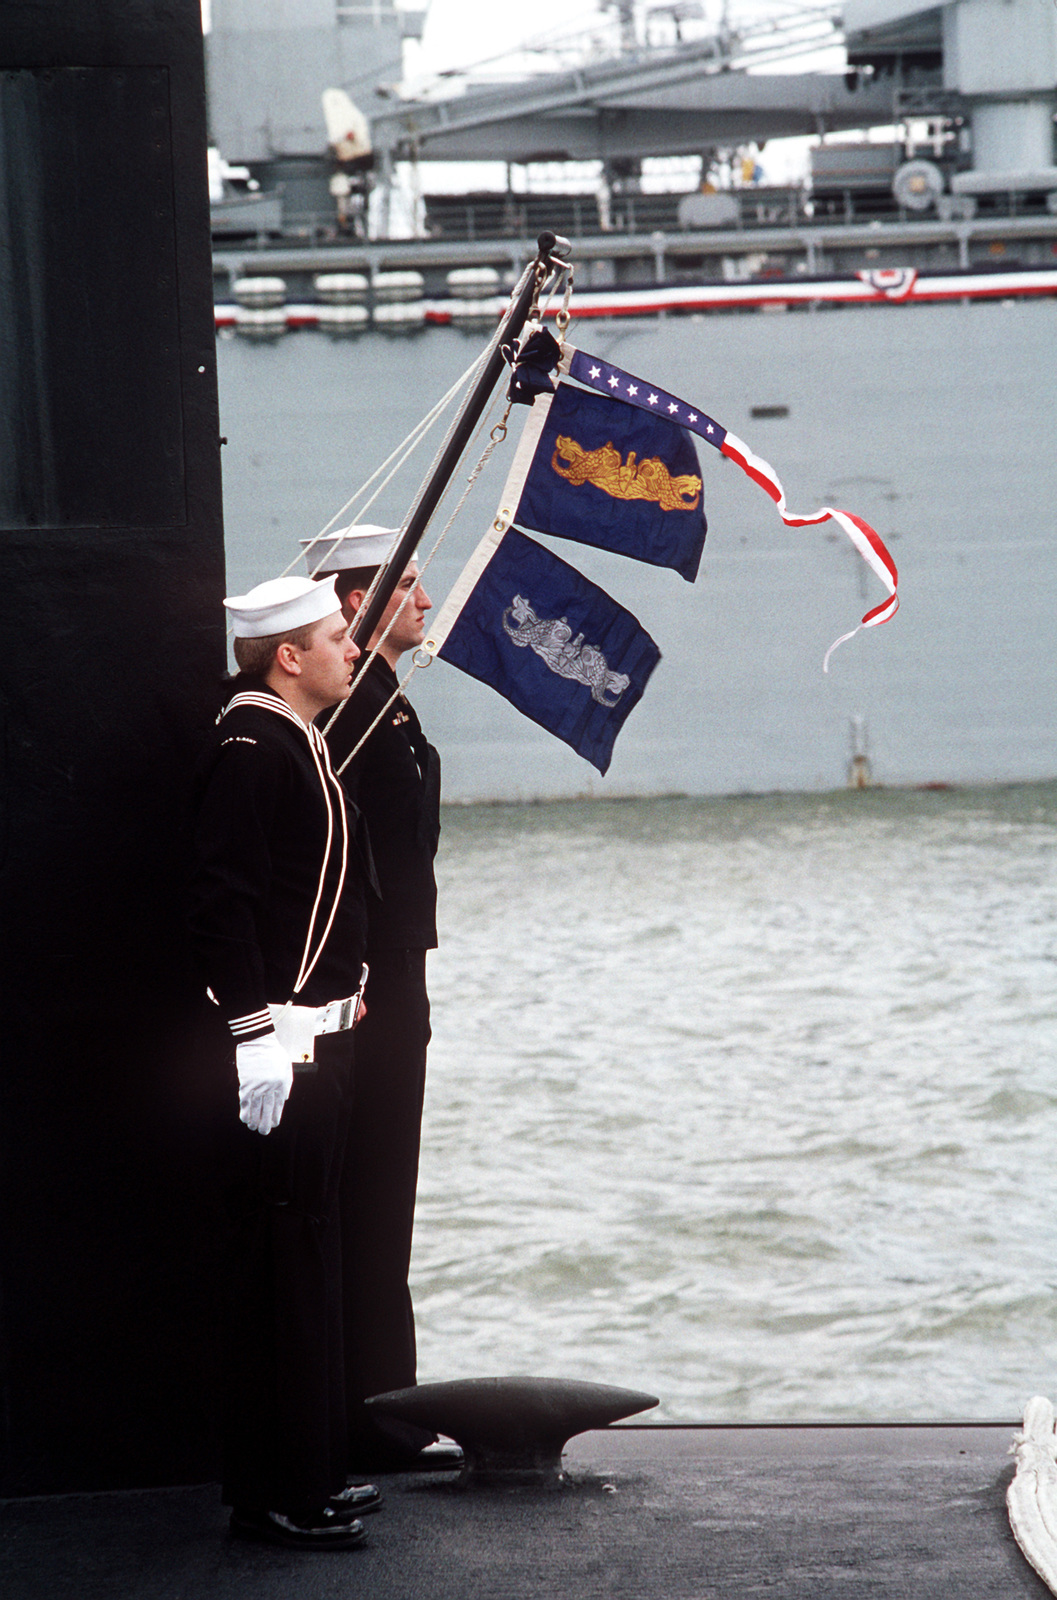 The ship's commissioning pennant, along with the pennants of the gold and blue crews, are raised aboard the nuclear-powered attack submarine USS ALBANY (SSN 753) during the vessel's commissioning ceremony